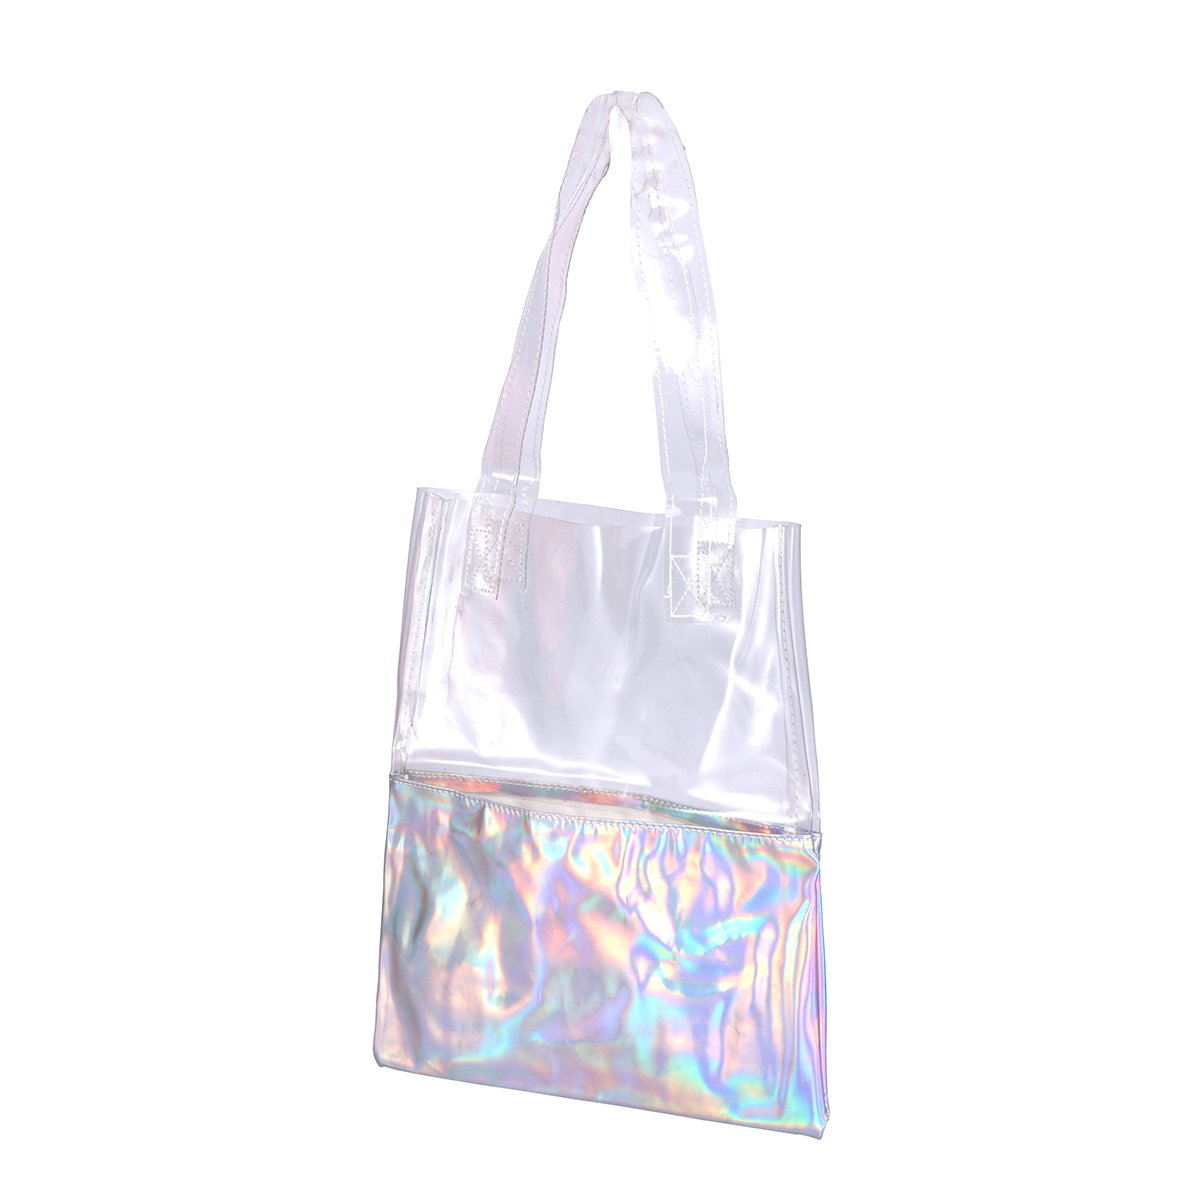 LUOEM Shoulder Bag Chic Hologram Transparent Clear Handbag Tote Bag for Women Silver